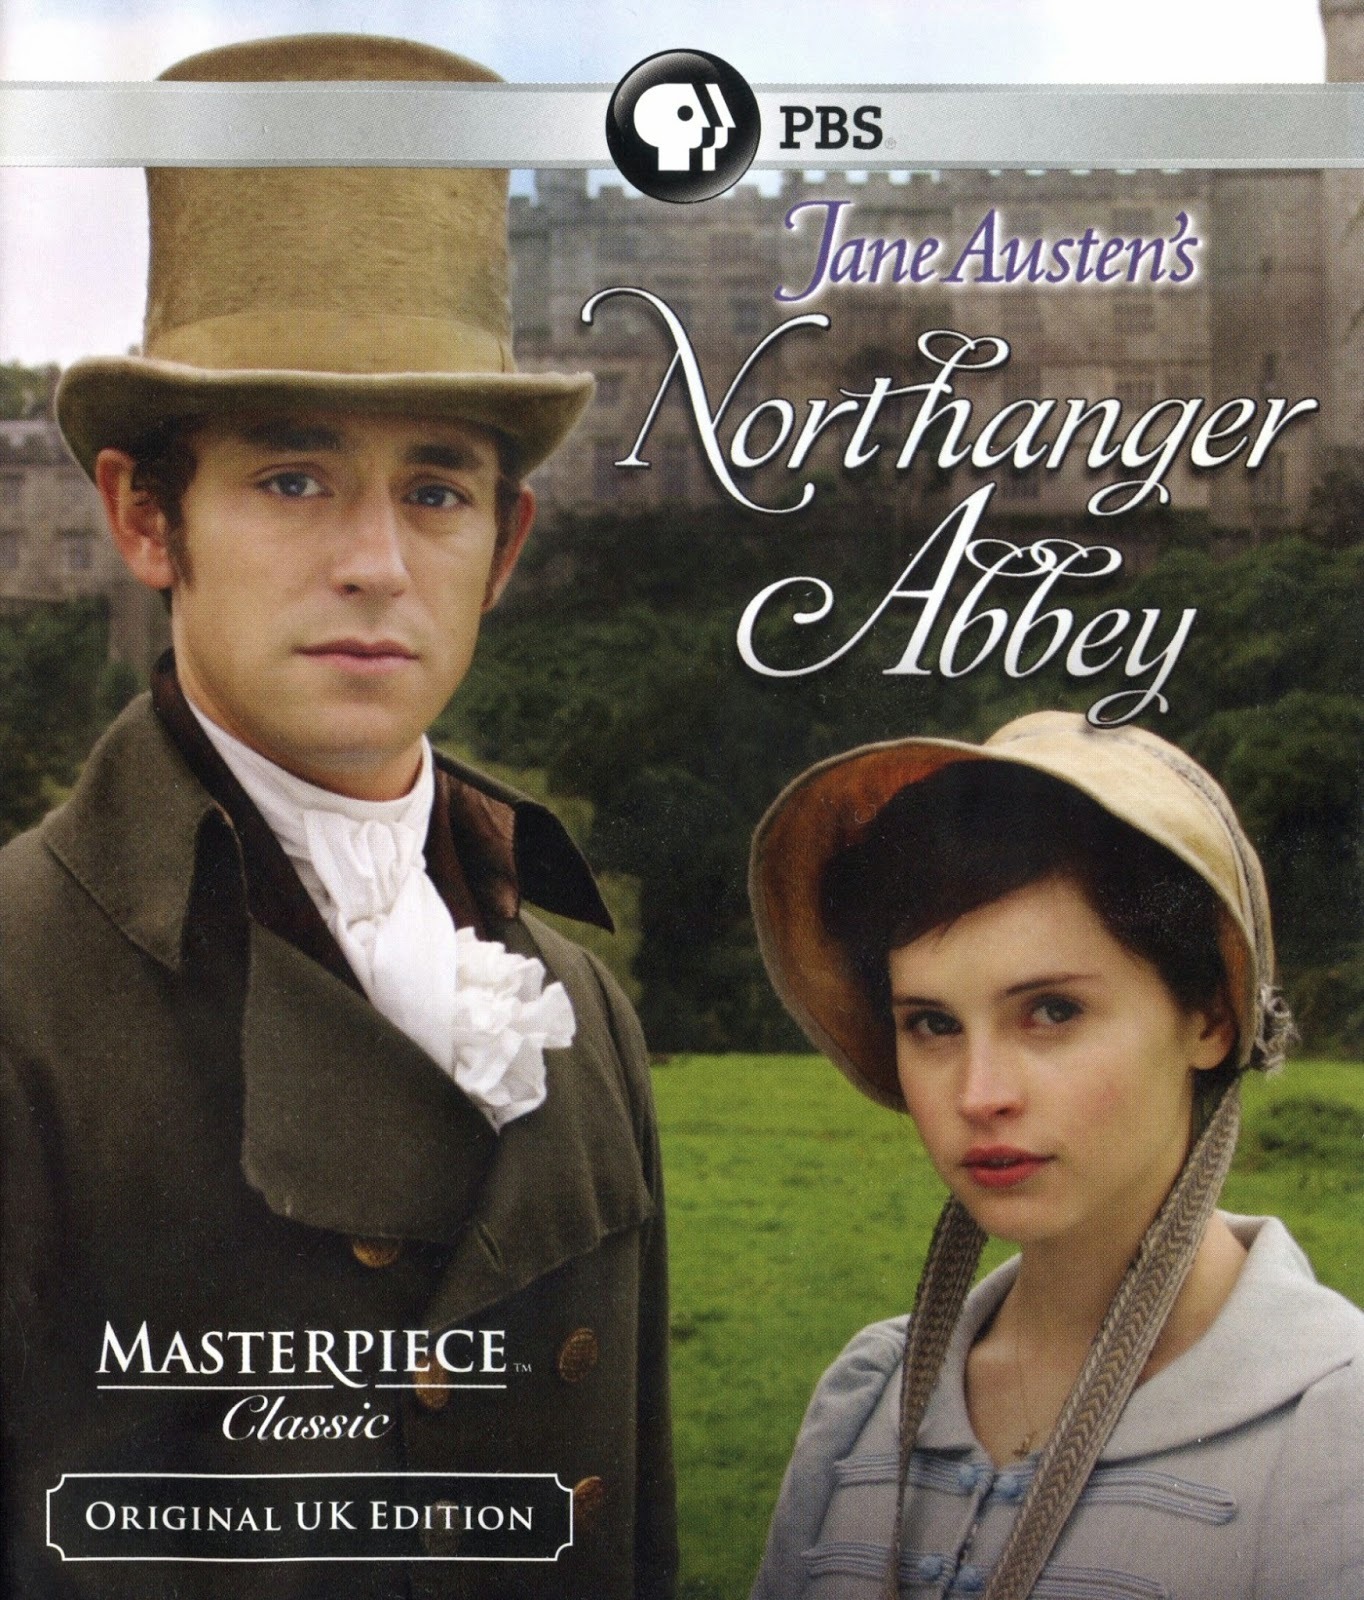 a visual analysis of signet classics cover of northanger abbey In austen's time, books were bound very simply in cardboard covers with only a  paper  riverdale classics edition of northanger abbey (1990)  the guardian  is editorially independent, meaning we set our own agenda.